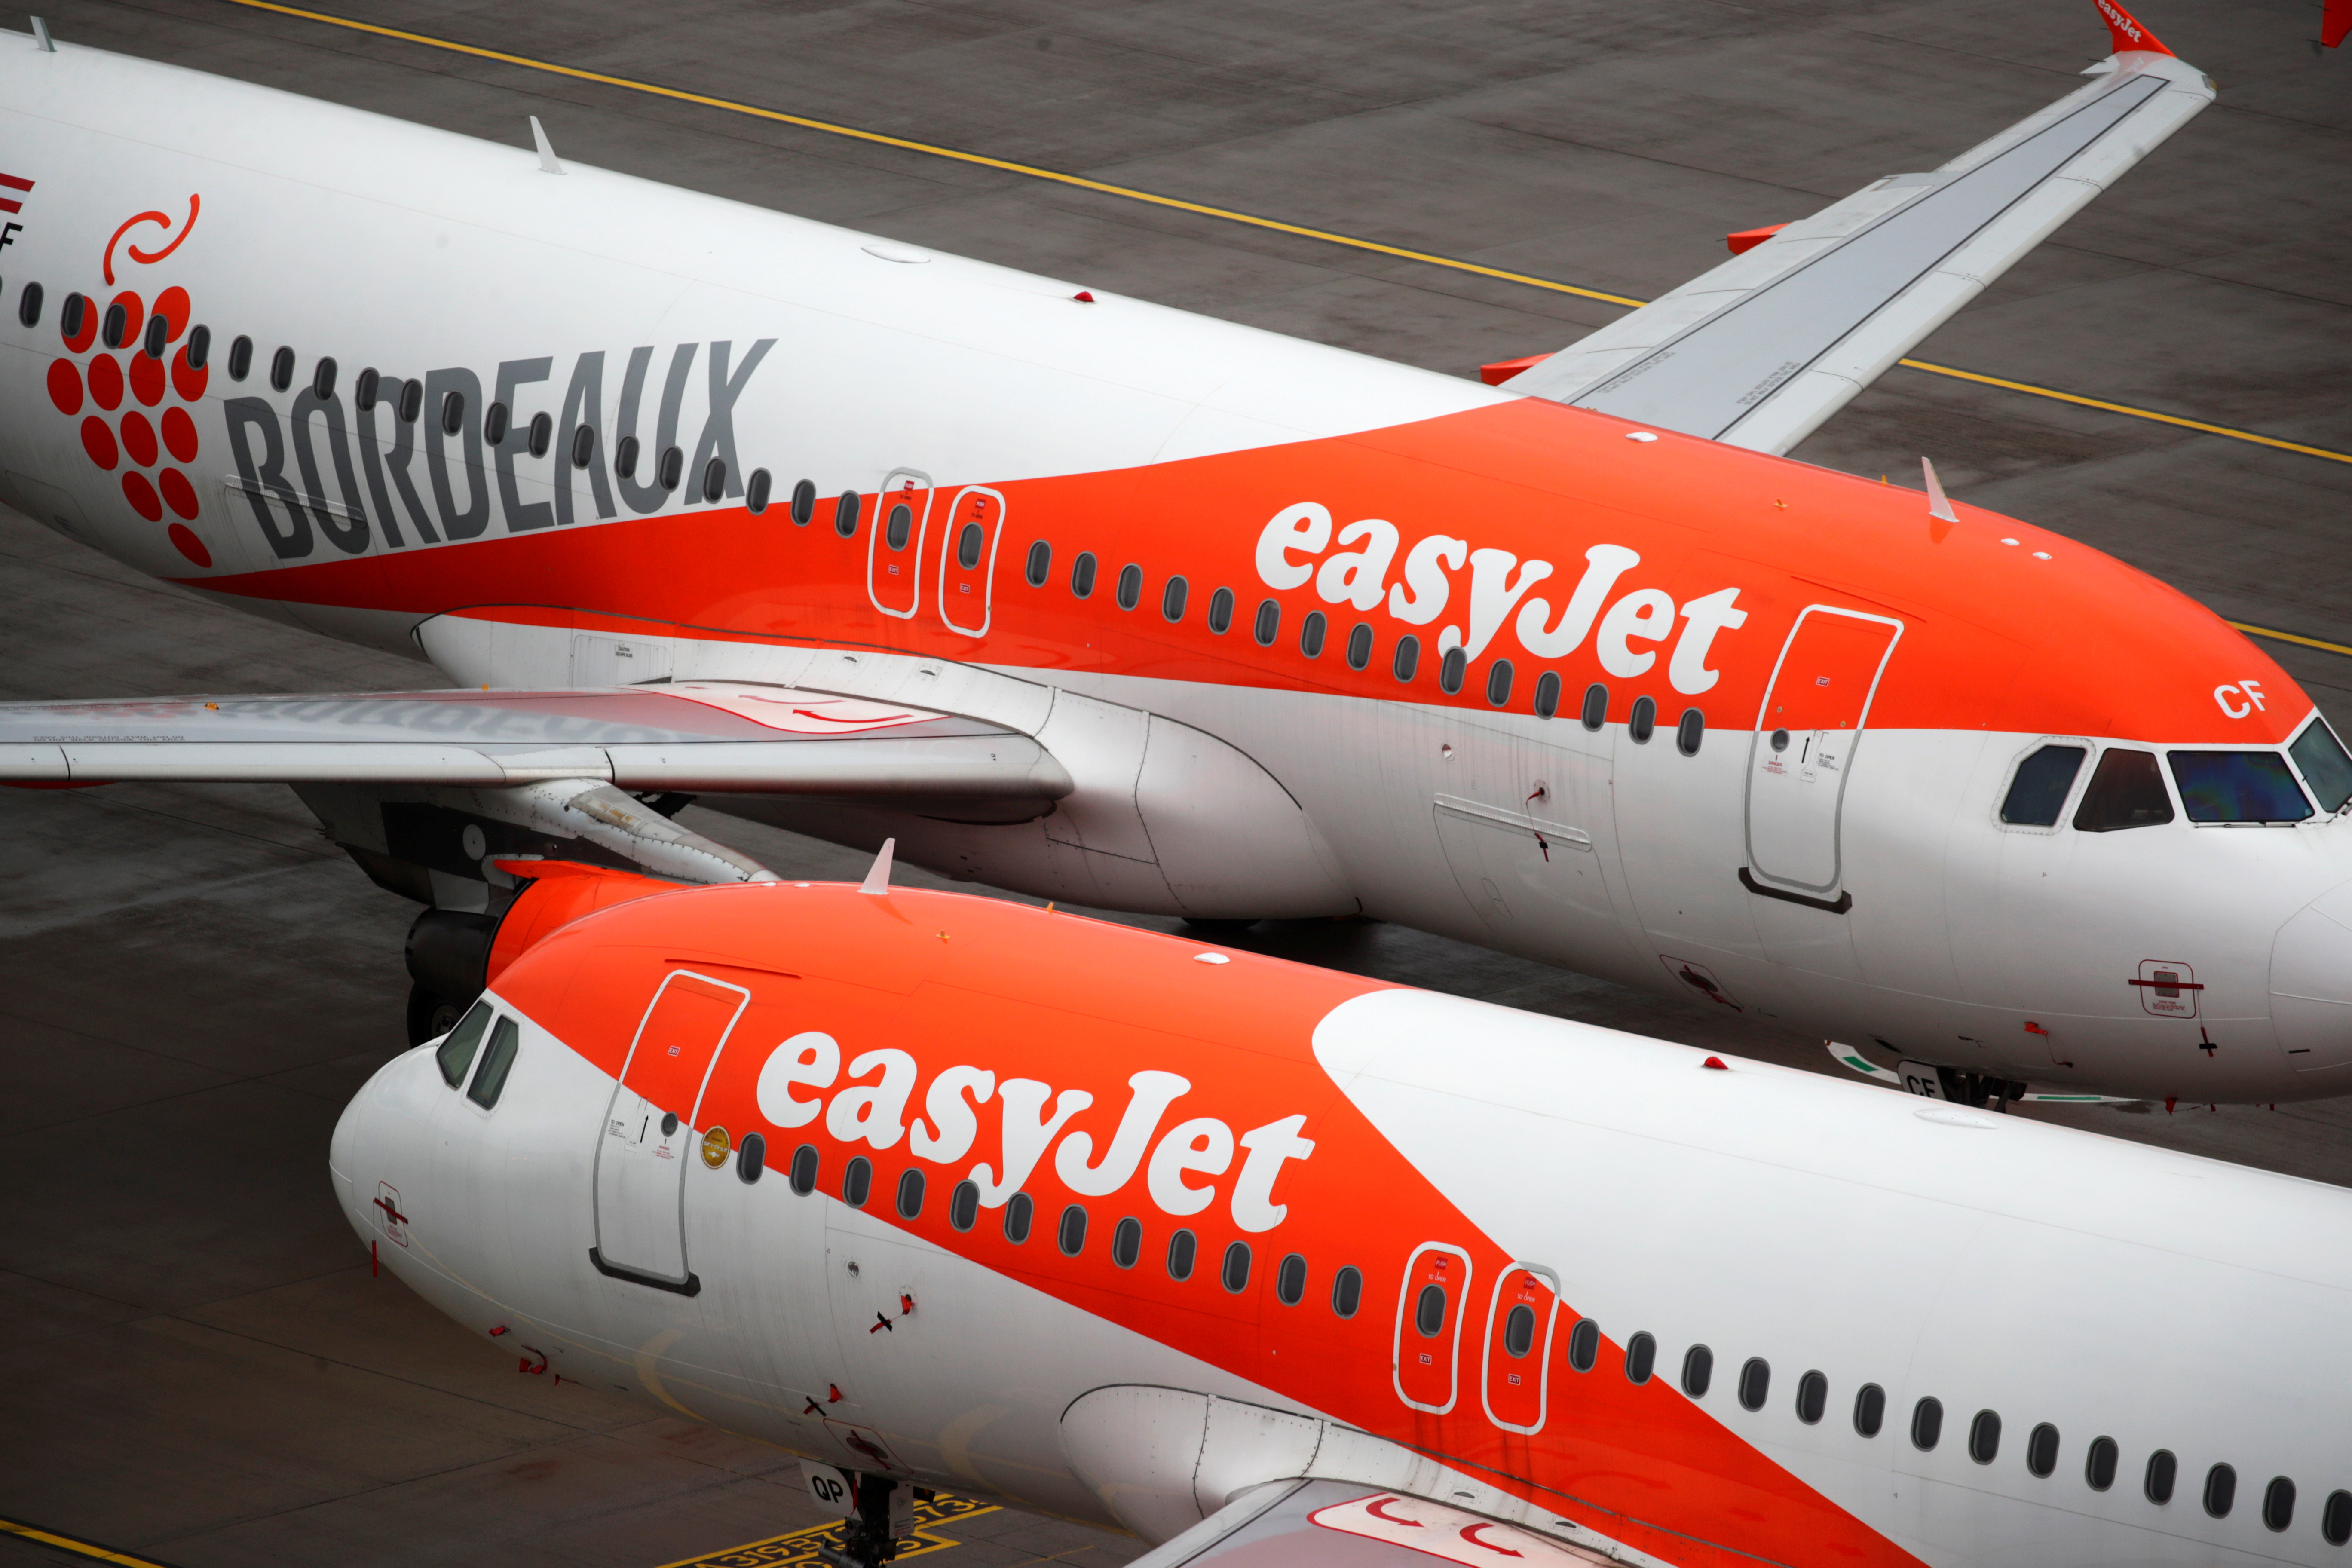 EasyJet aircrafts are seen on the tarmac at Terminal 1, marking the official opening of the new Berlin-Brandenburg Airport (BER)